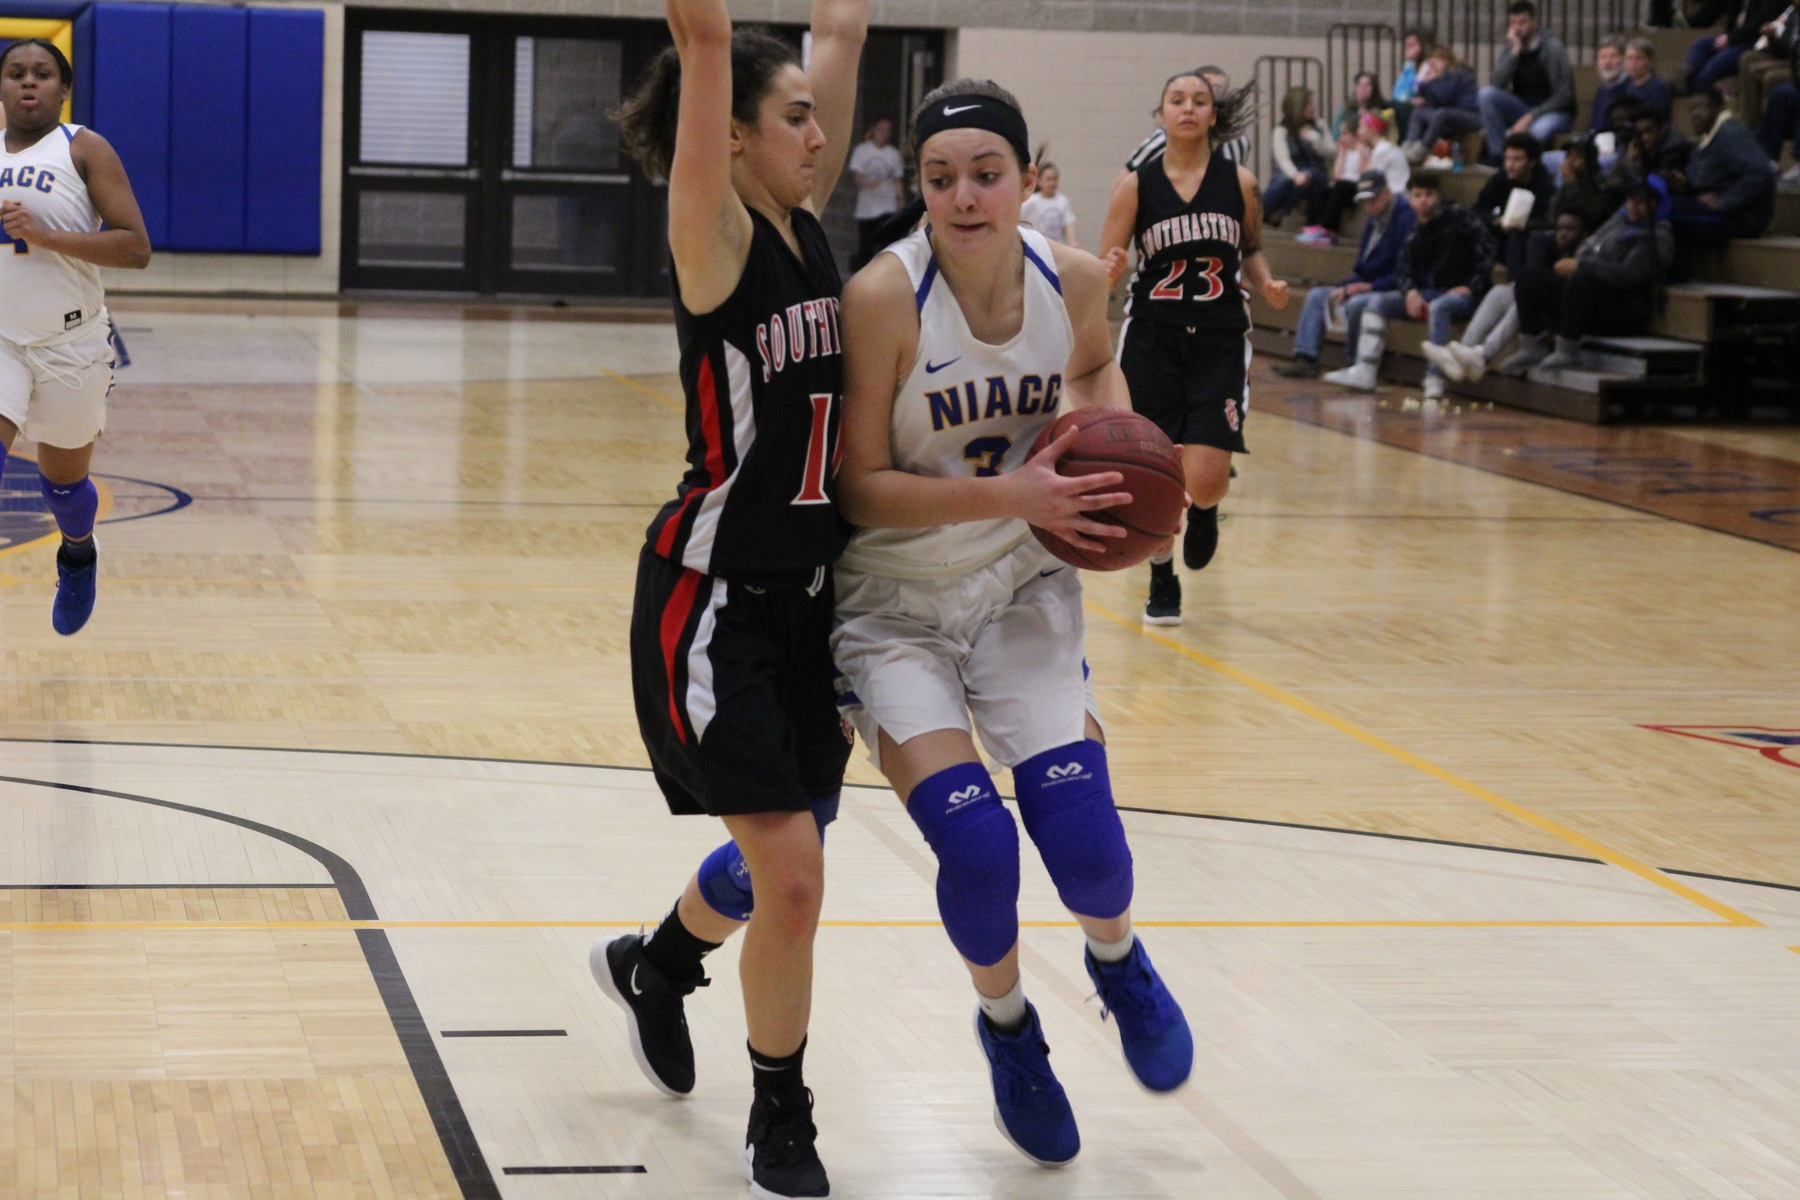 NIACC's Mandy Willems drives to the basket during last Sunday's game against Southeastern.